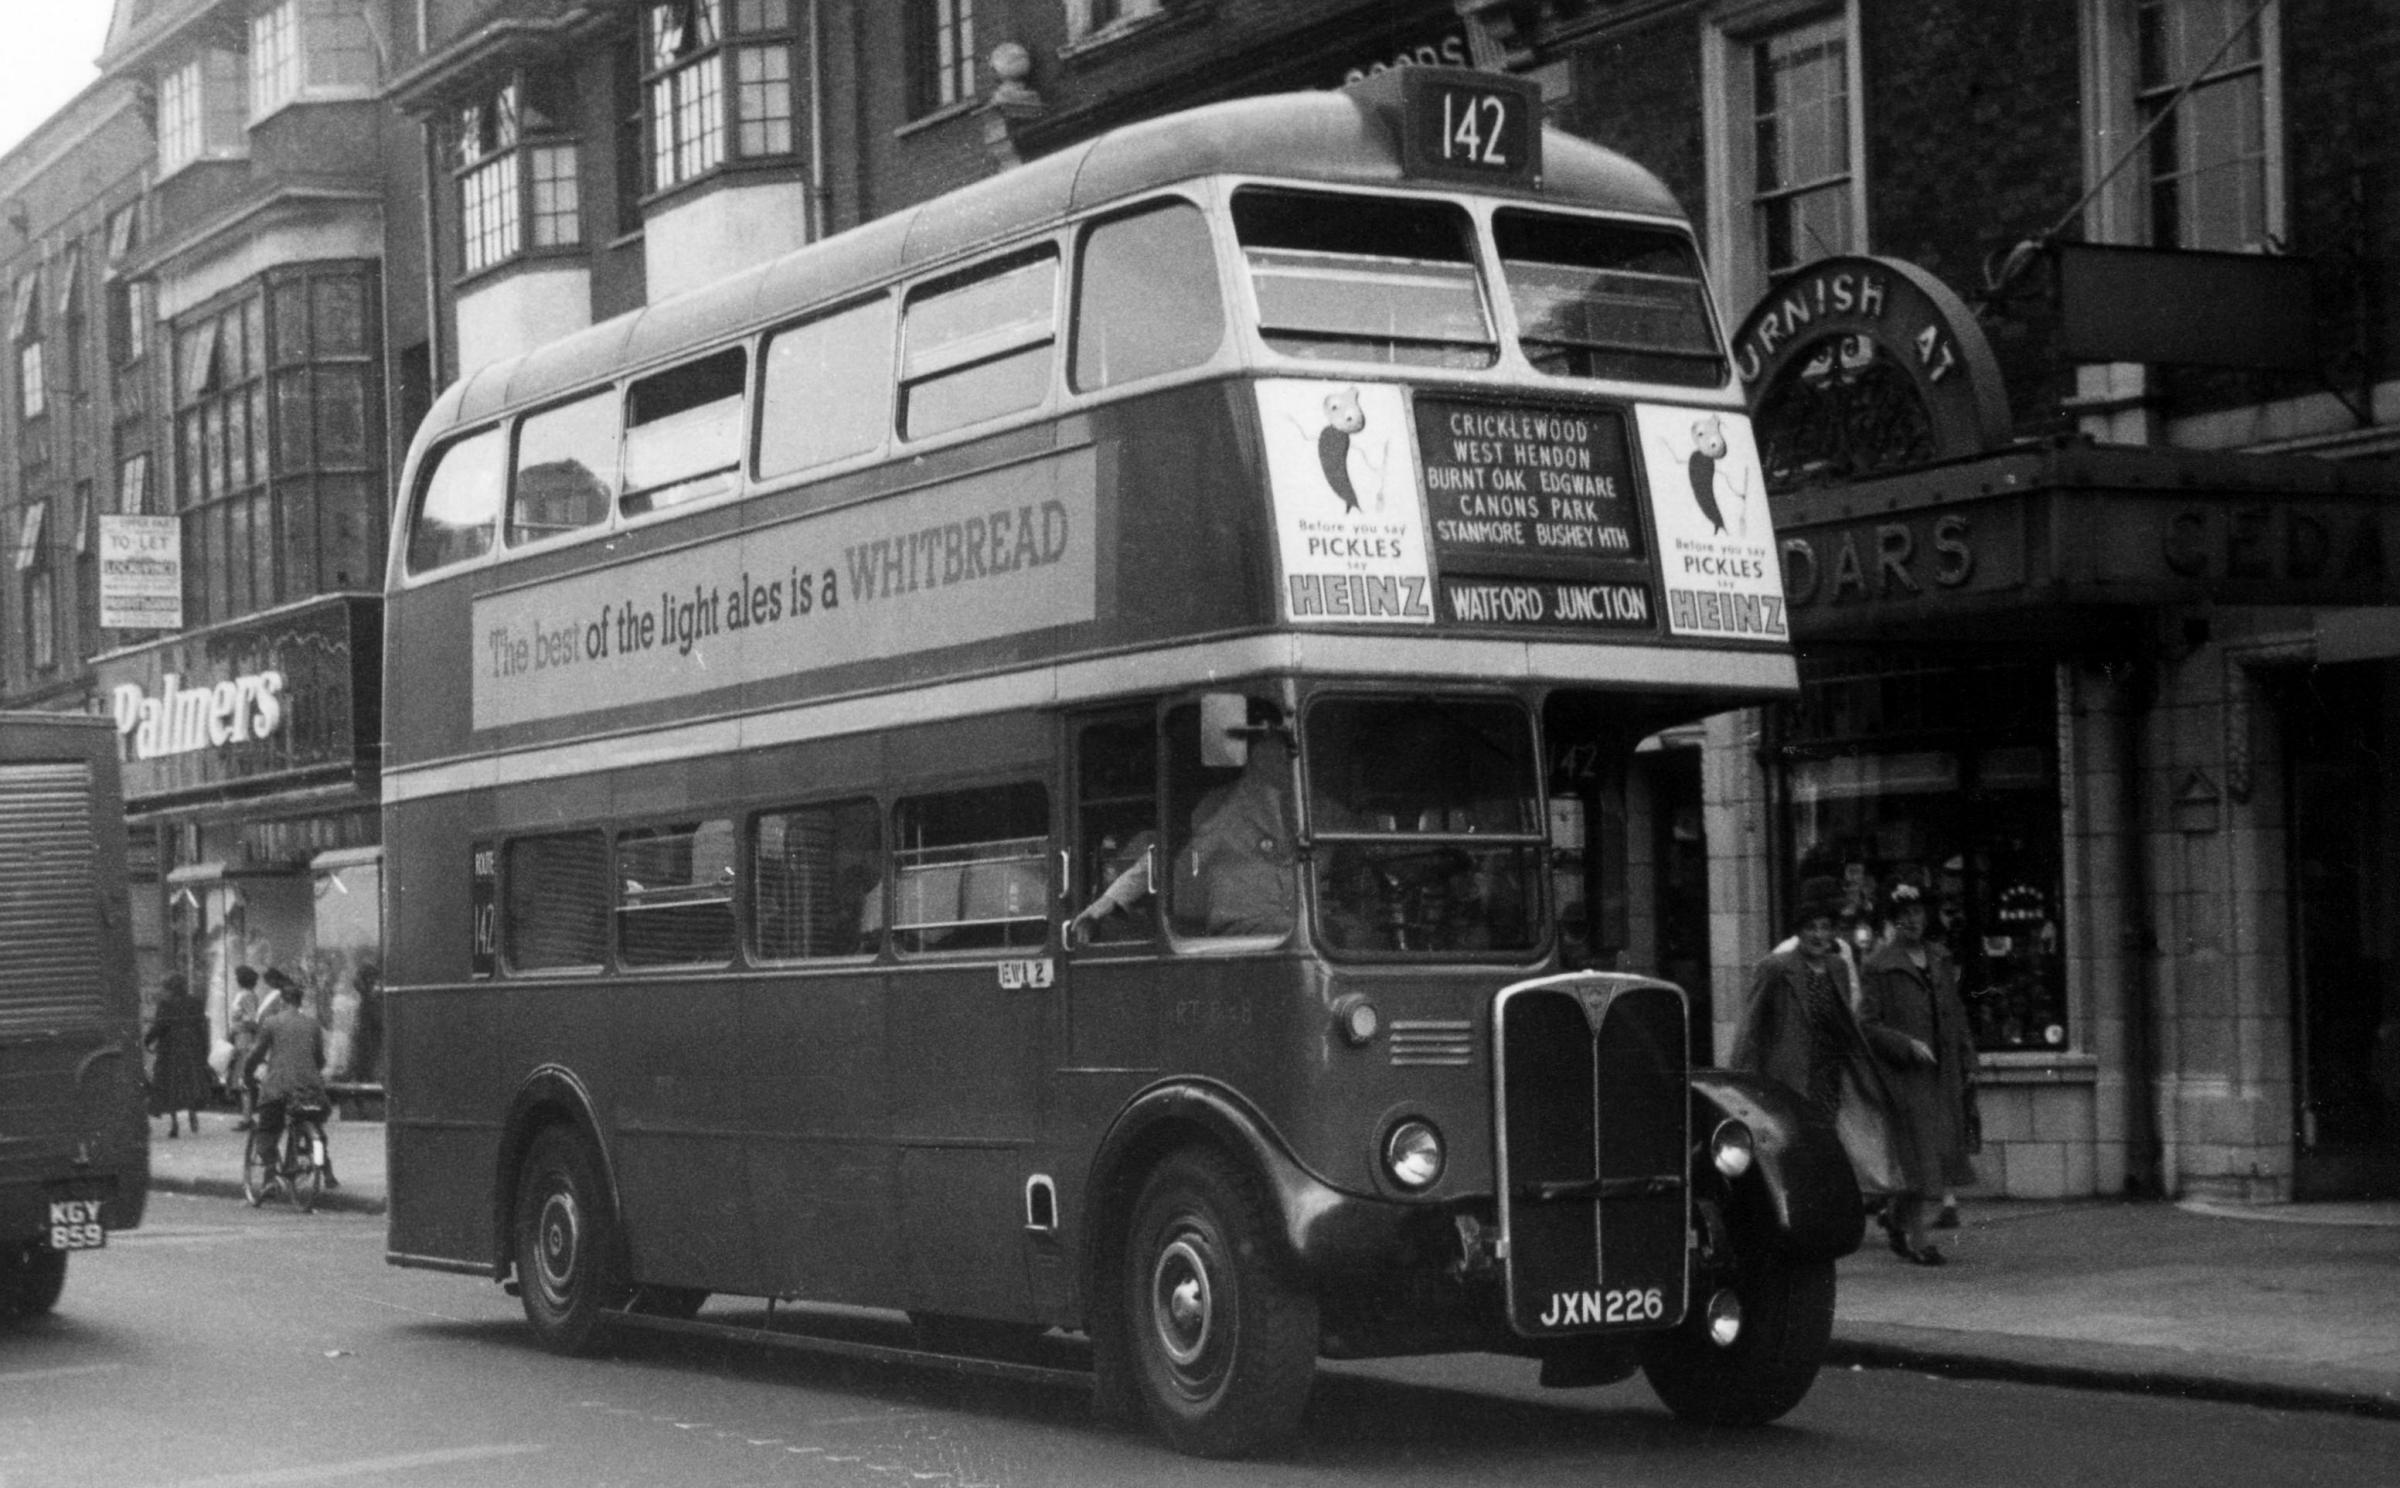 Day of celebration to mark bus route's centenary